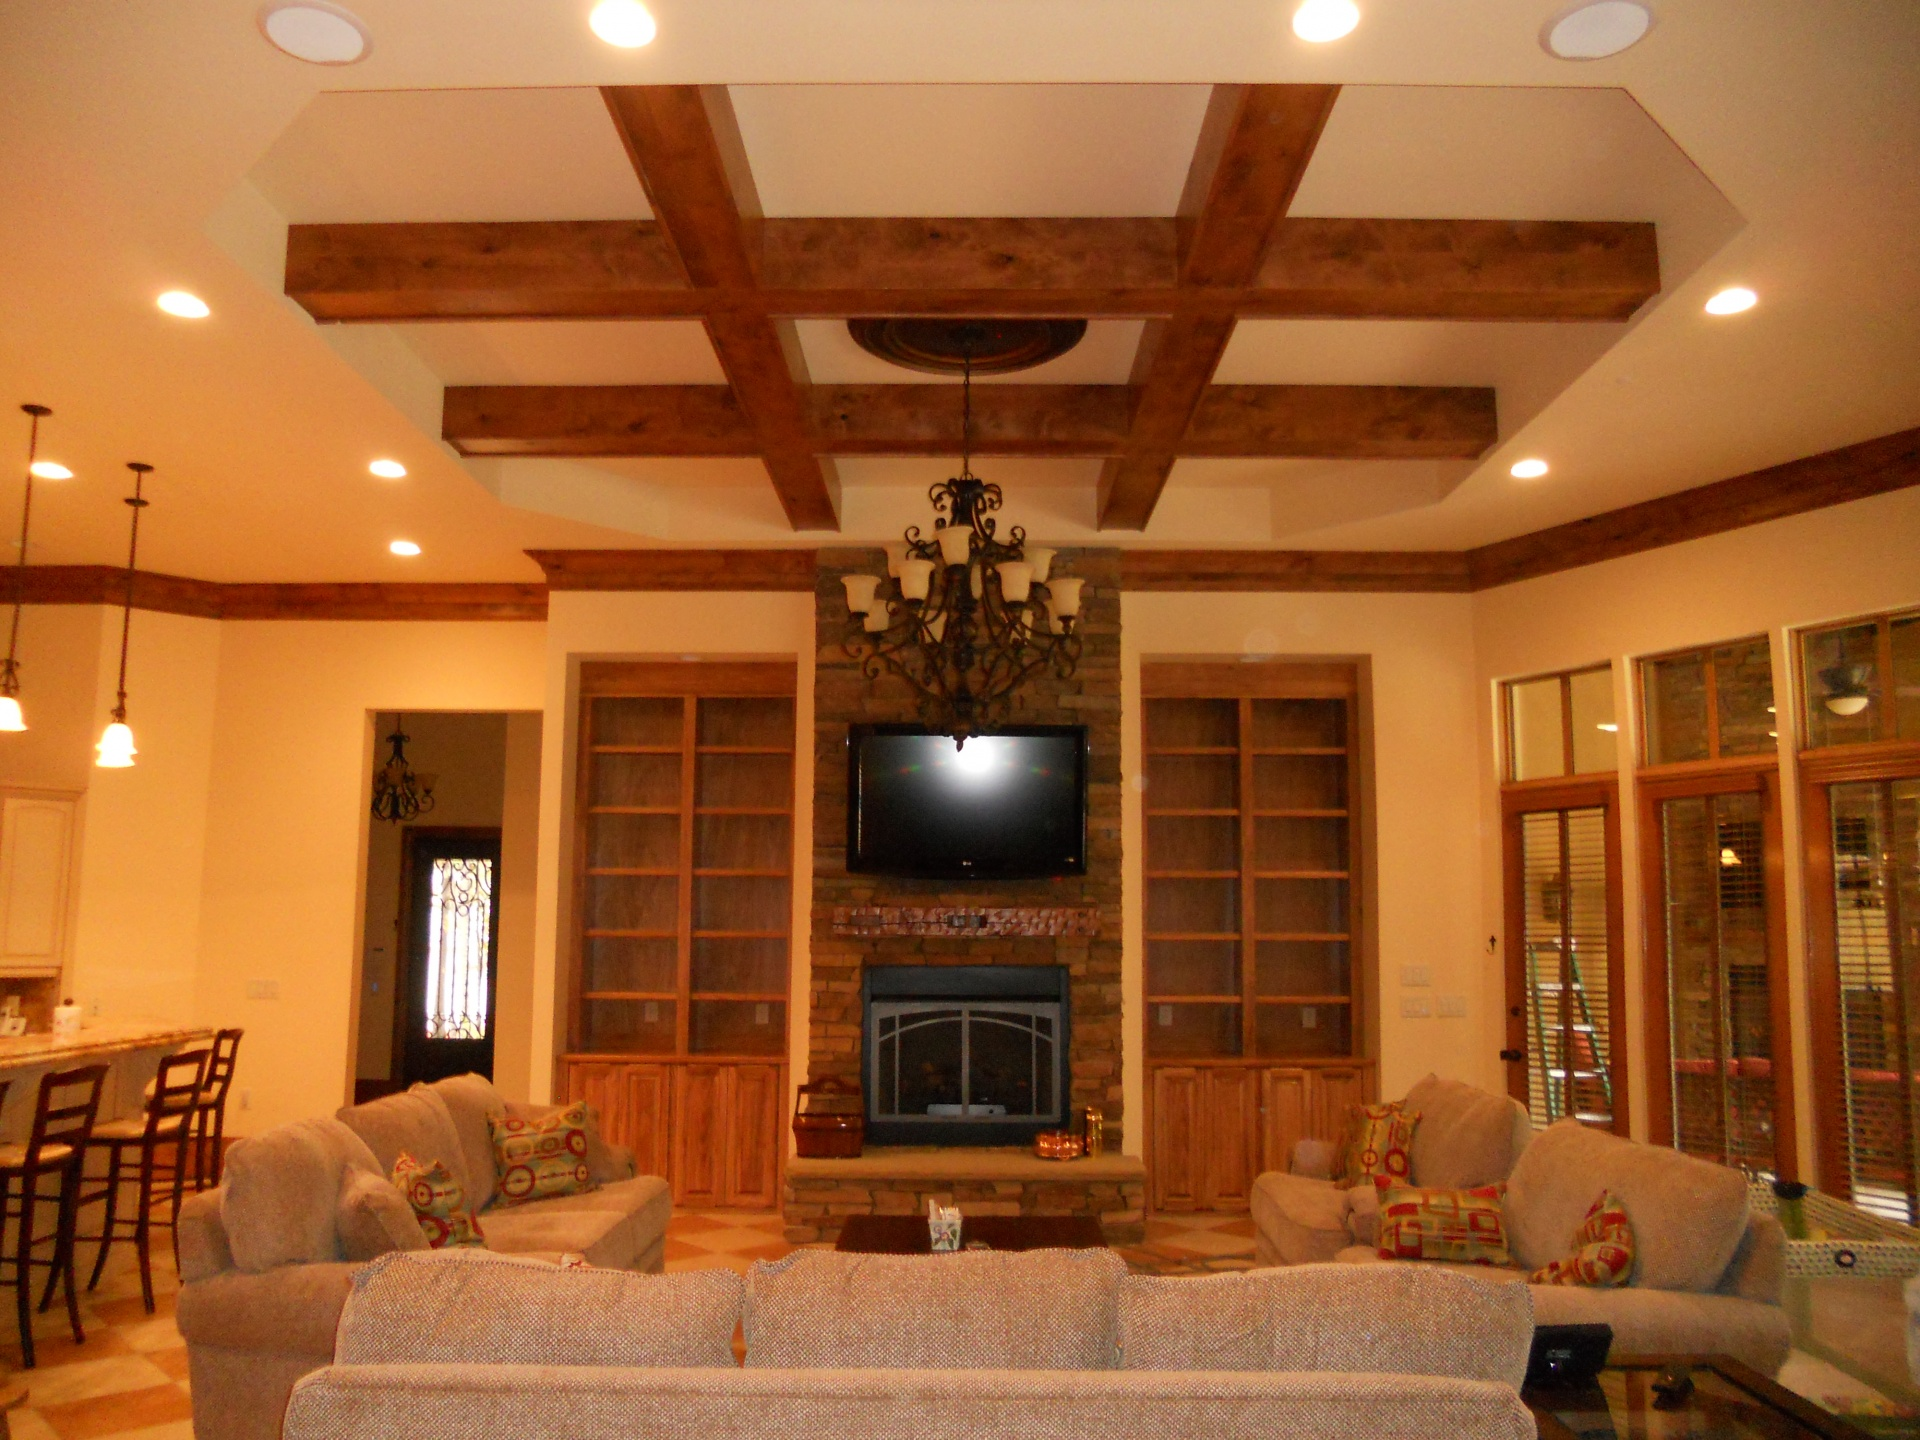 Solid-Wood-For-Ceiling-Design-Ideas.jpg